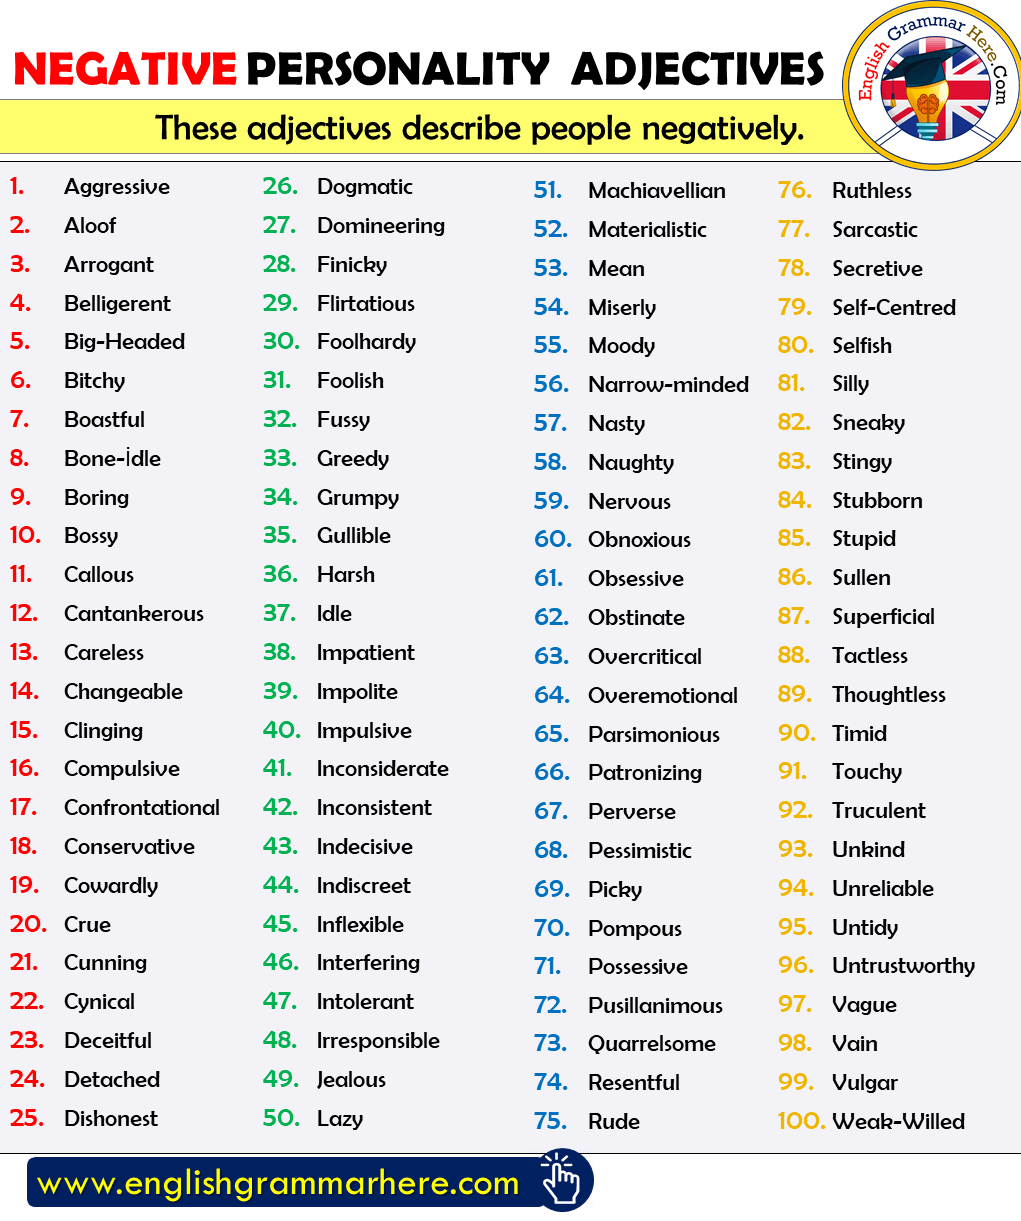 Negative Personality Adjectives List in English